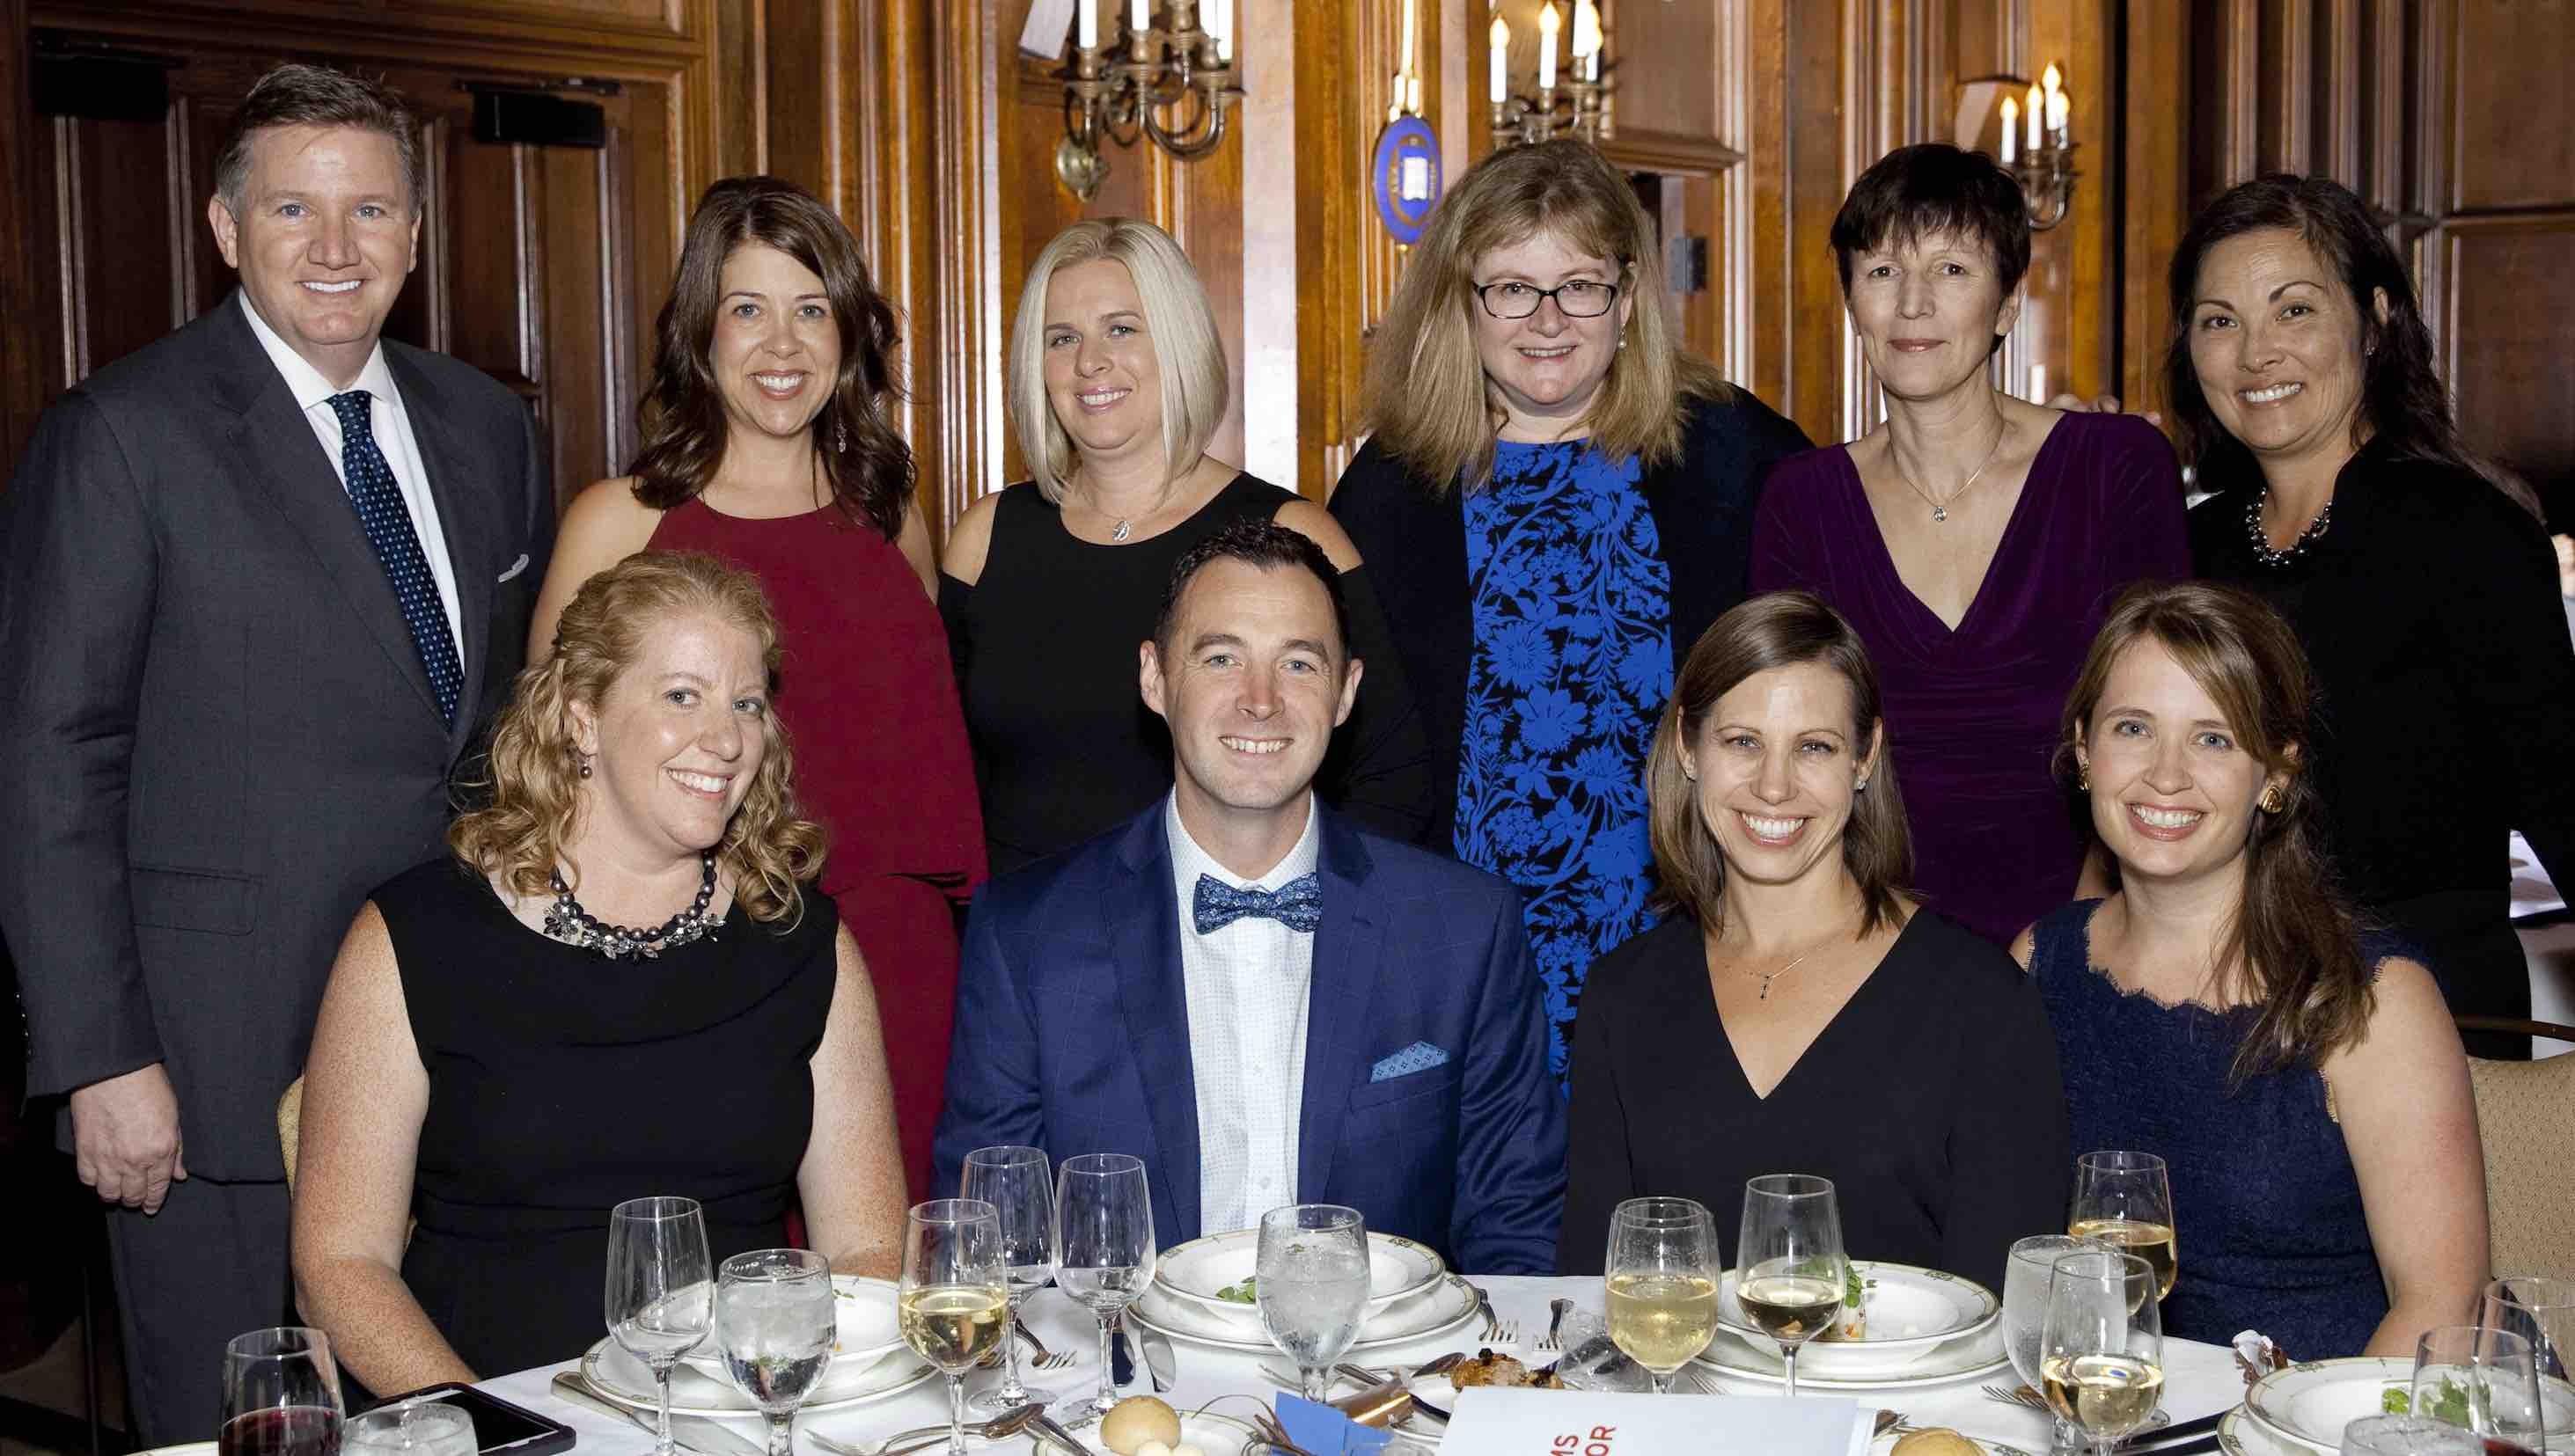 Photos: The Best Firms to Work For Gala